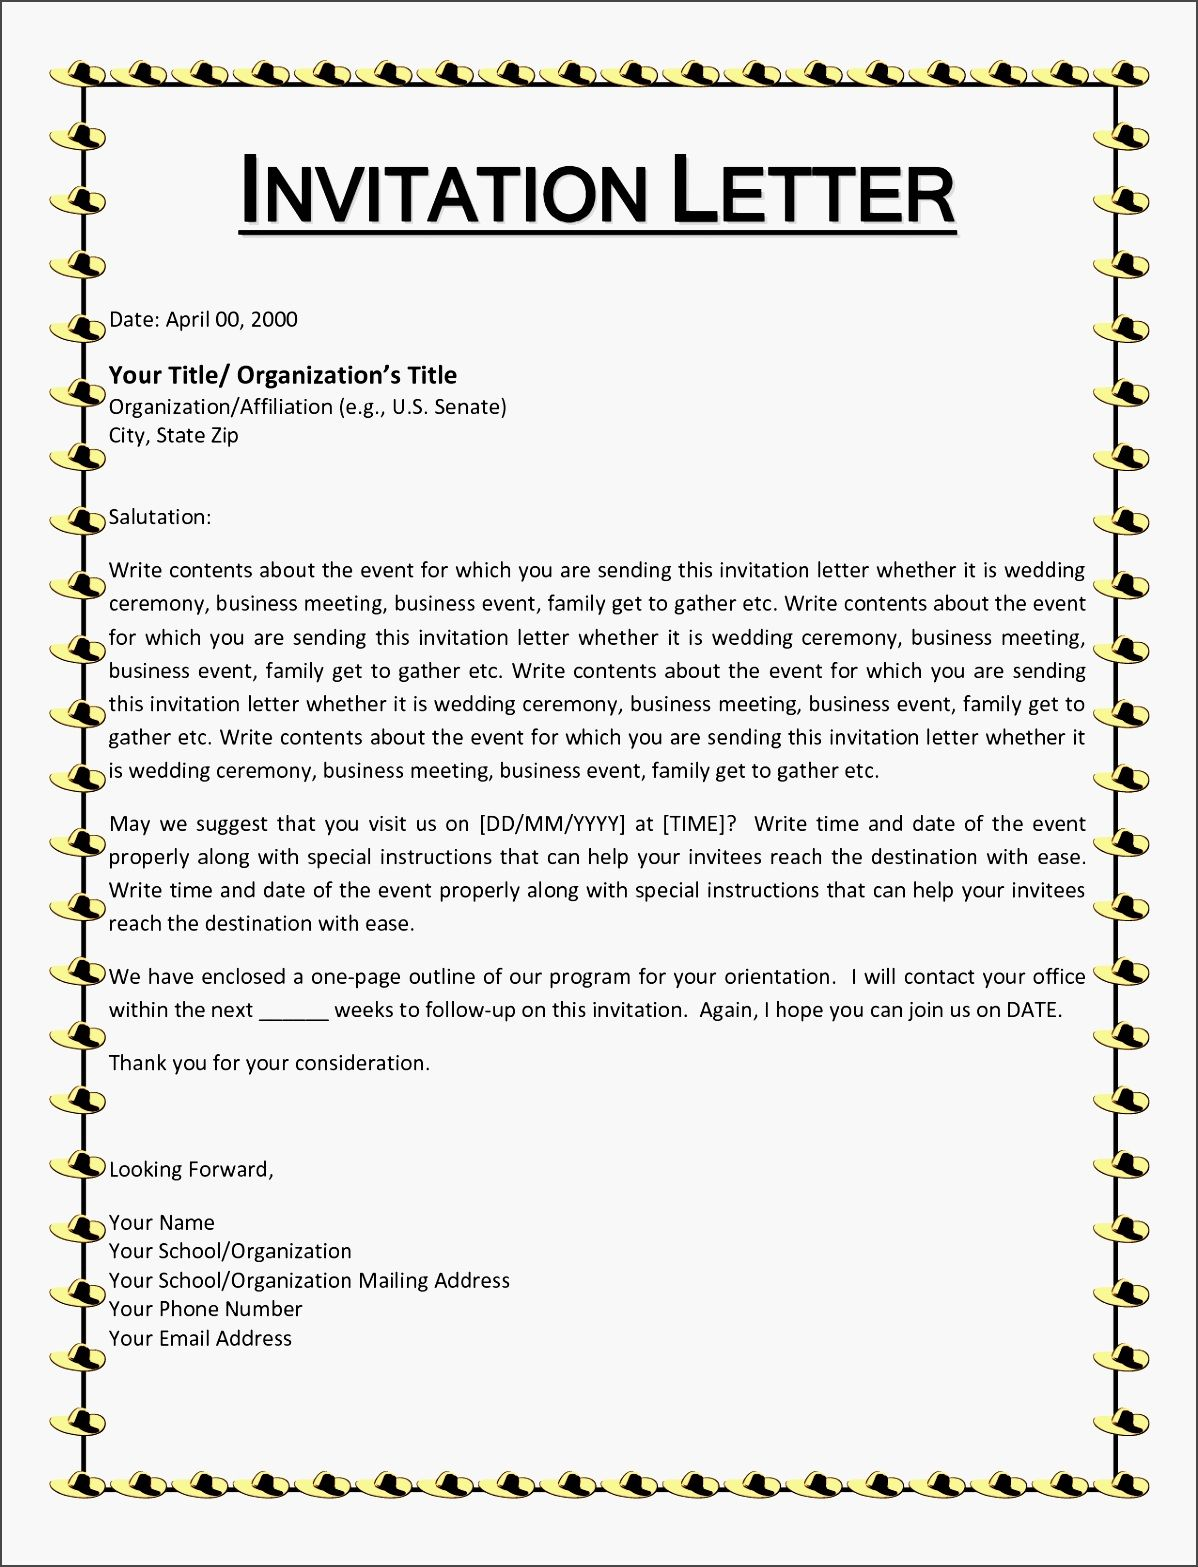 Invitation letter informal saevk beautiful wedding invitation invitation letter informal saevk beautiful wedding invitation letter informal wedding invitation letter stopboris Images